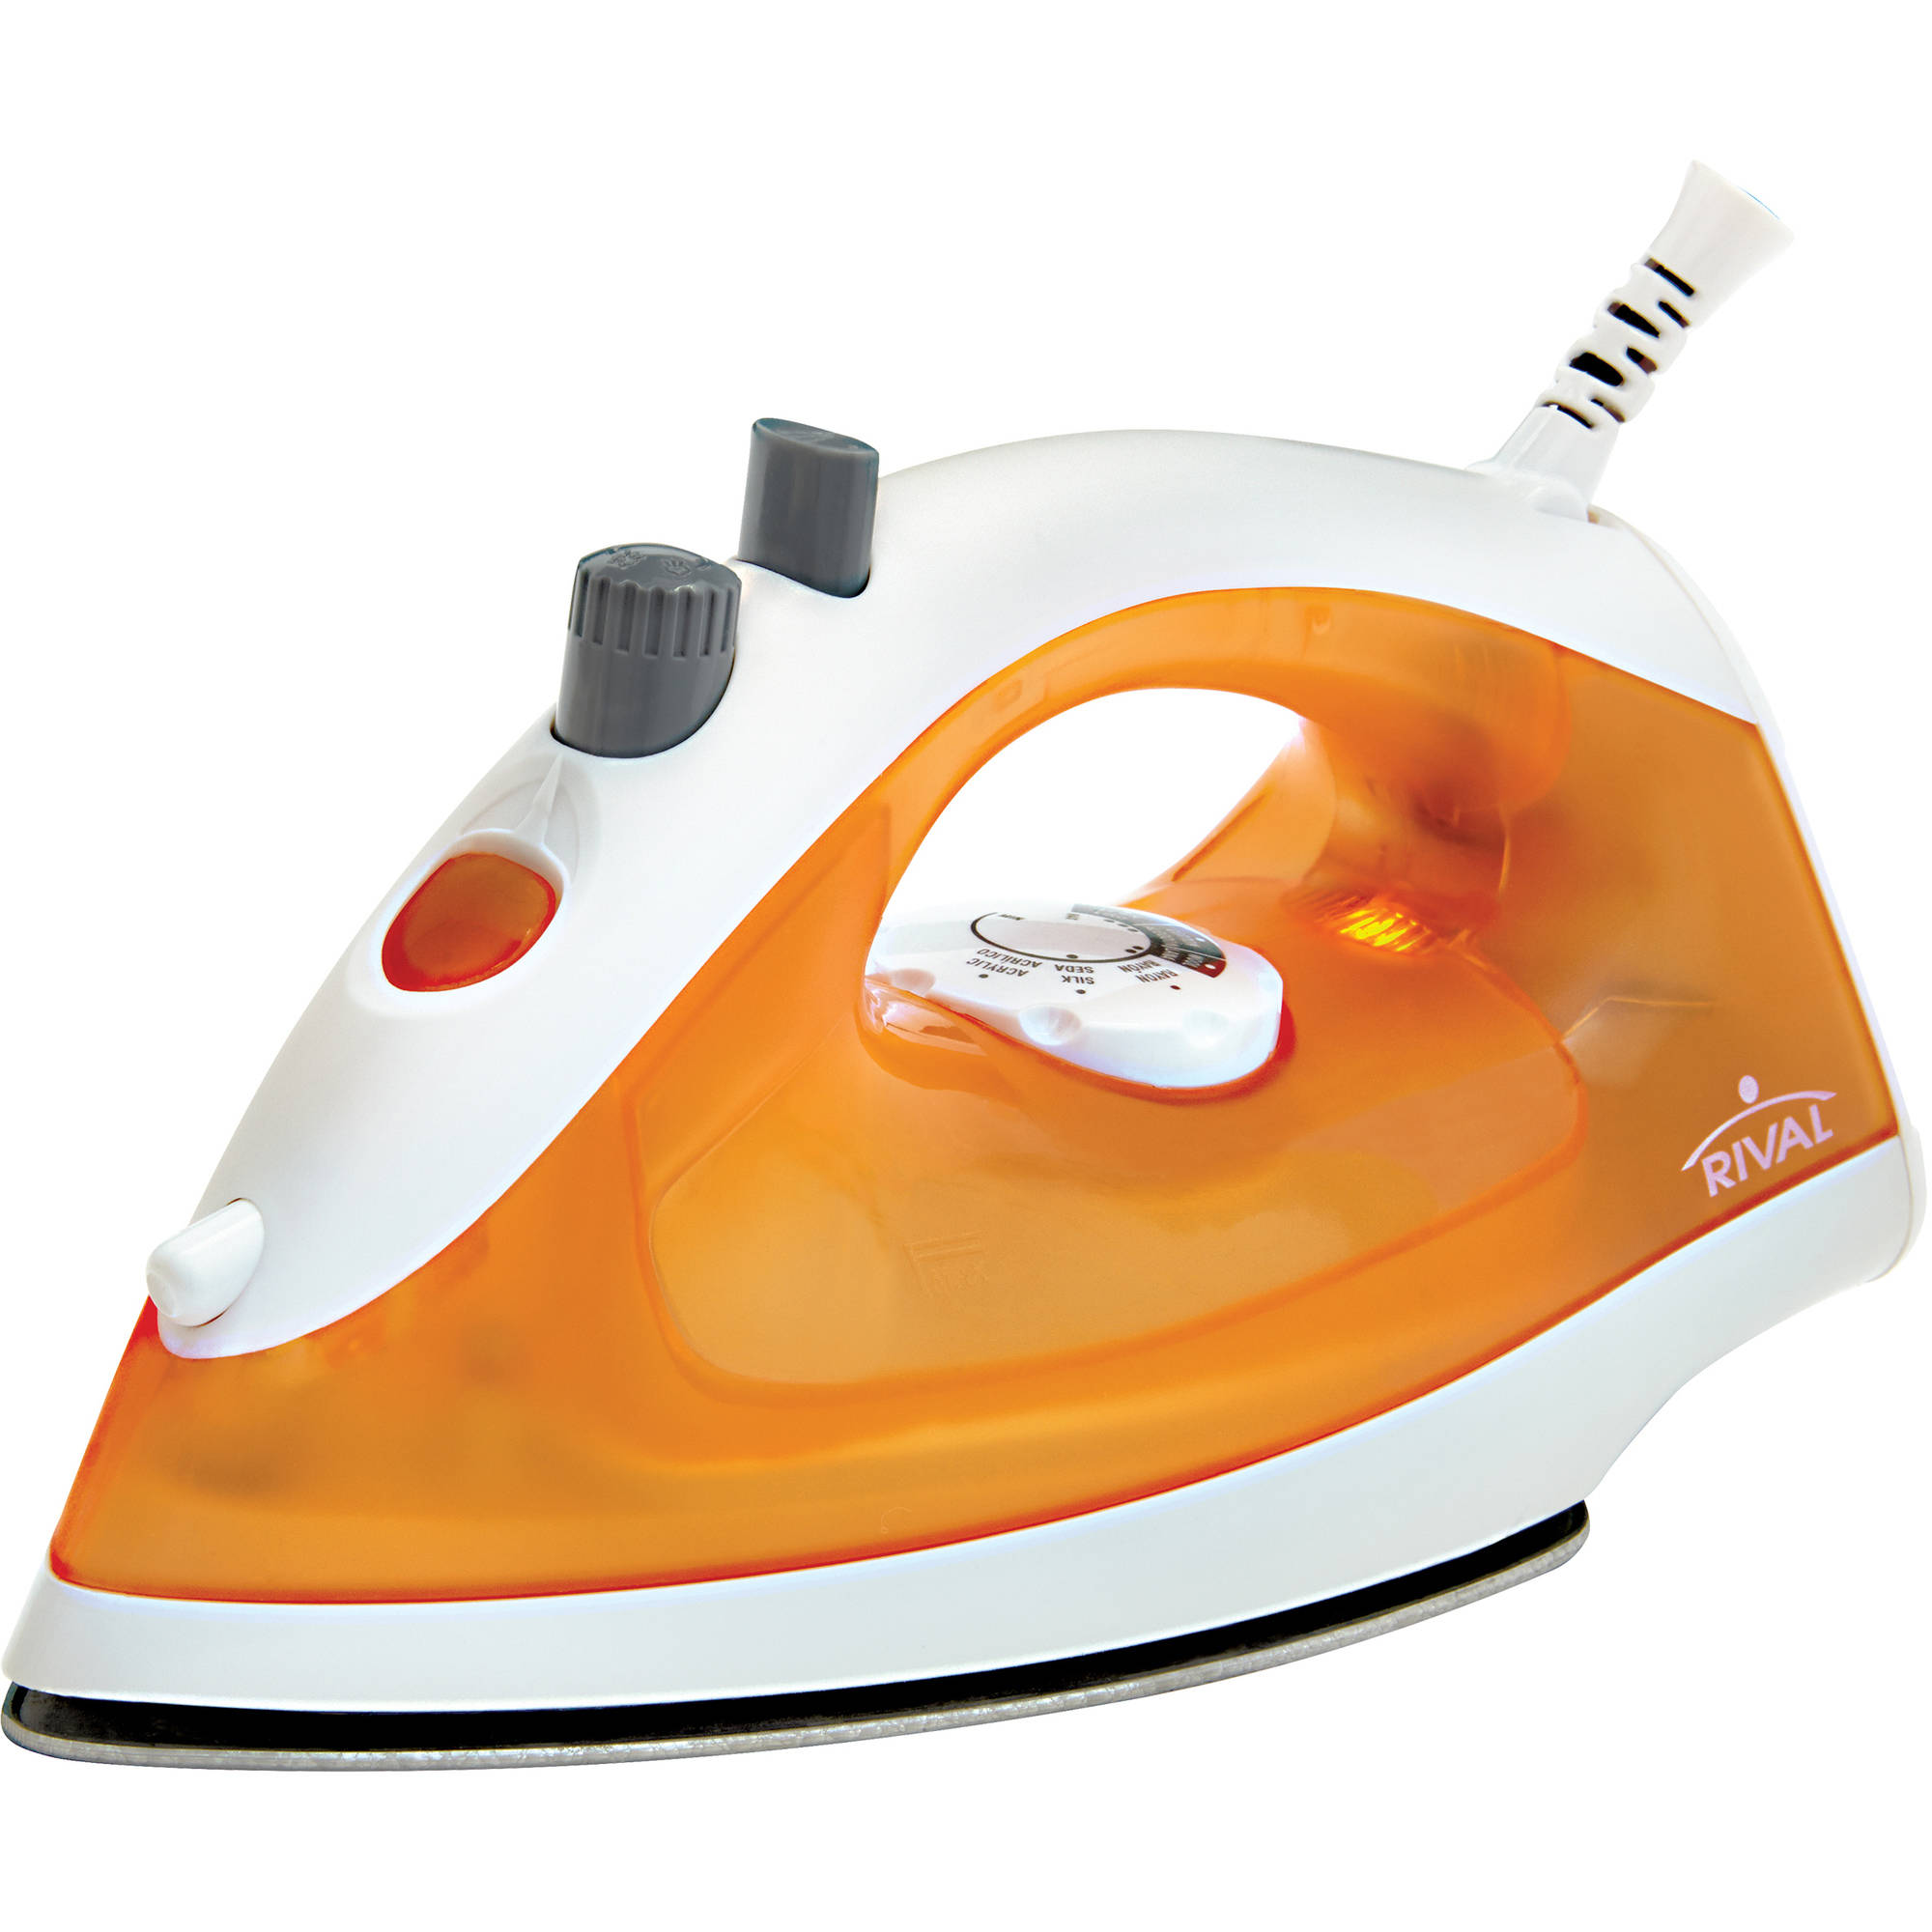 Rival Lightweight Iron, Orange/White